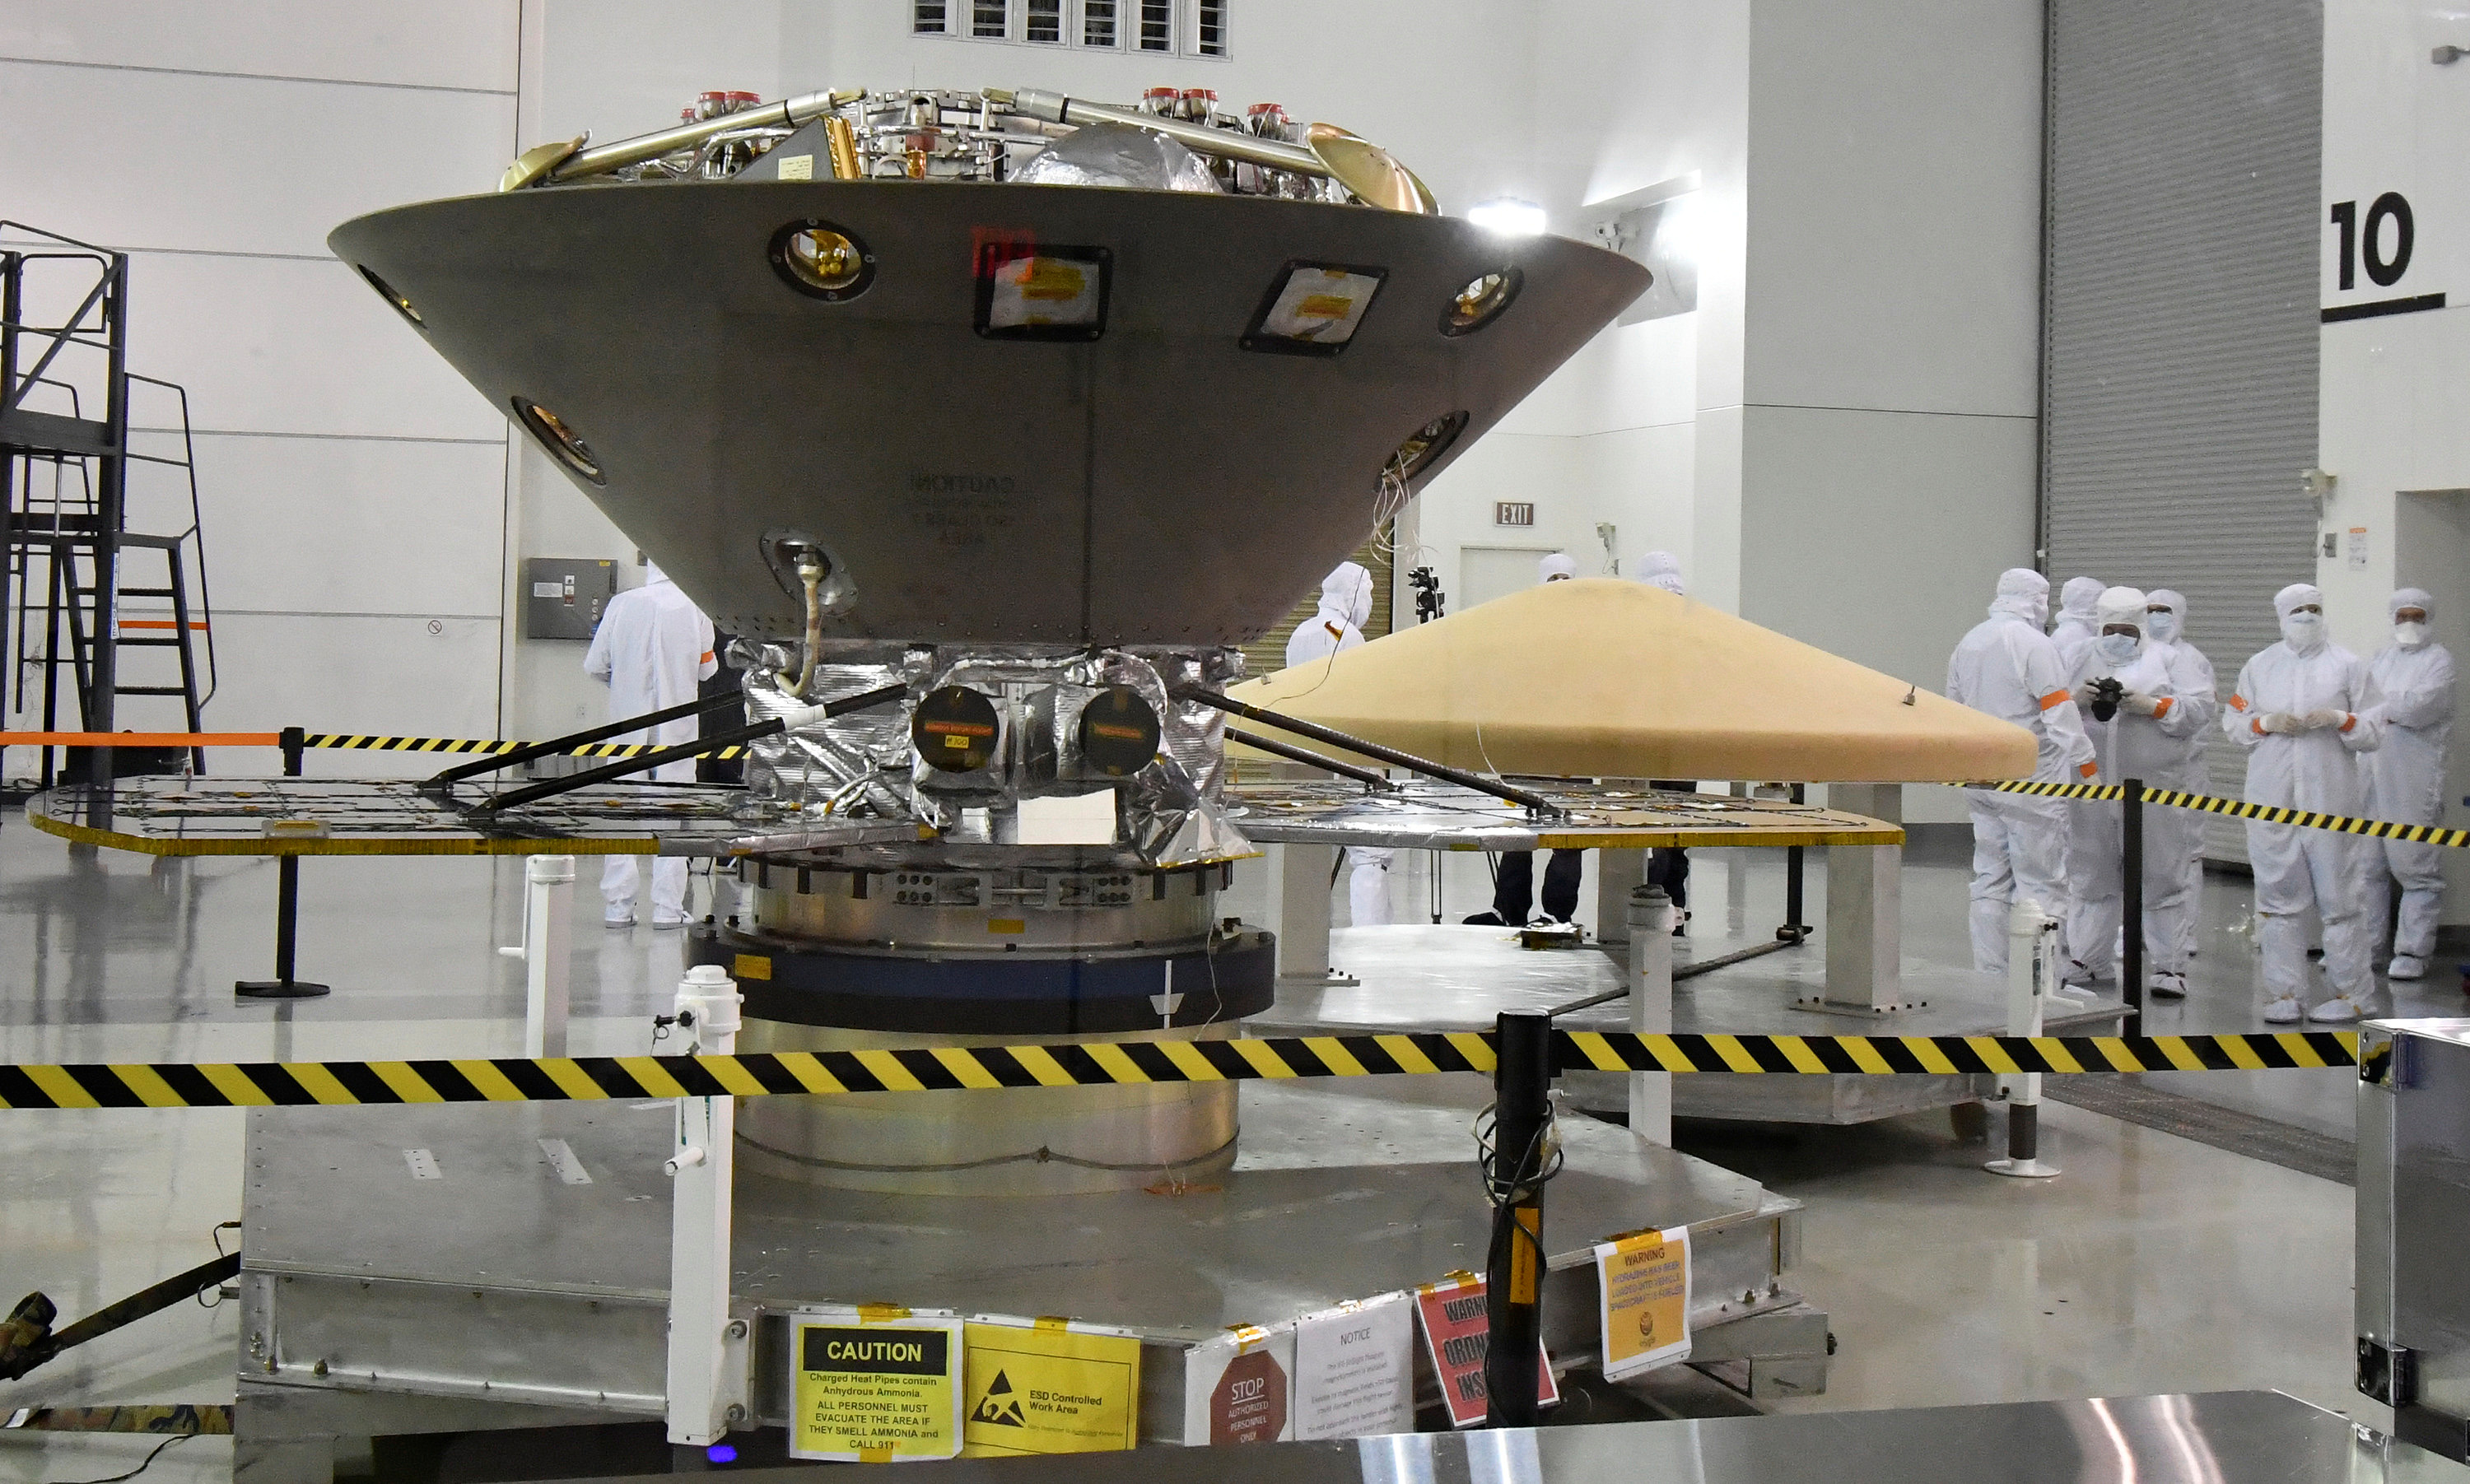 NASA's InSight spacecraft, destined for the Elysium Planitia region located in Mars' northern hemisphere, undergoes final preparations at Vandenberg Air Force Base, California, U.S., April 6, 2018.   REUTERS/Gene Blevins - RC16FA6251B0